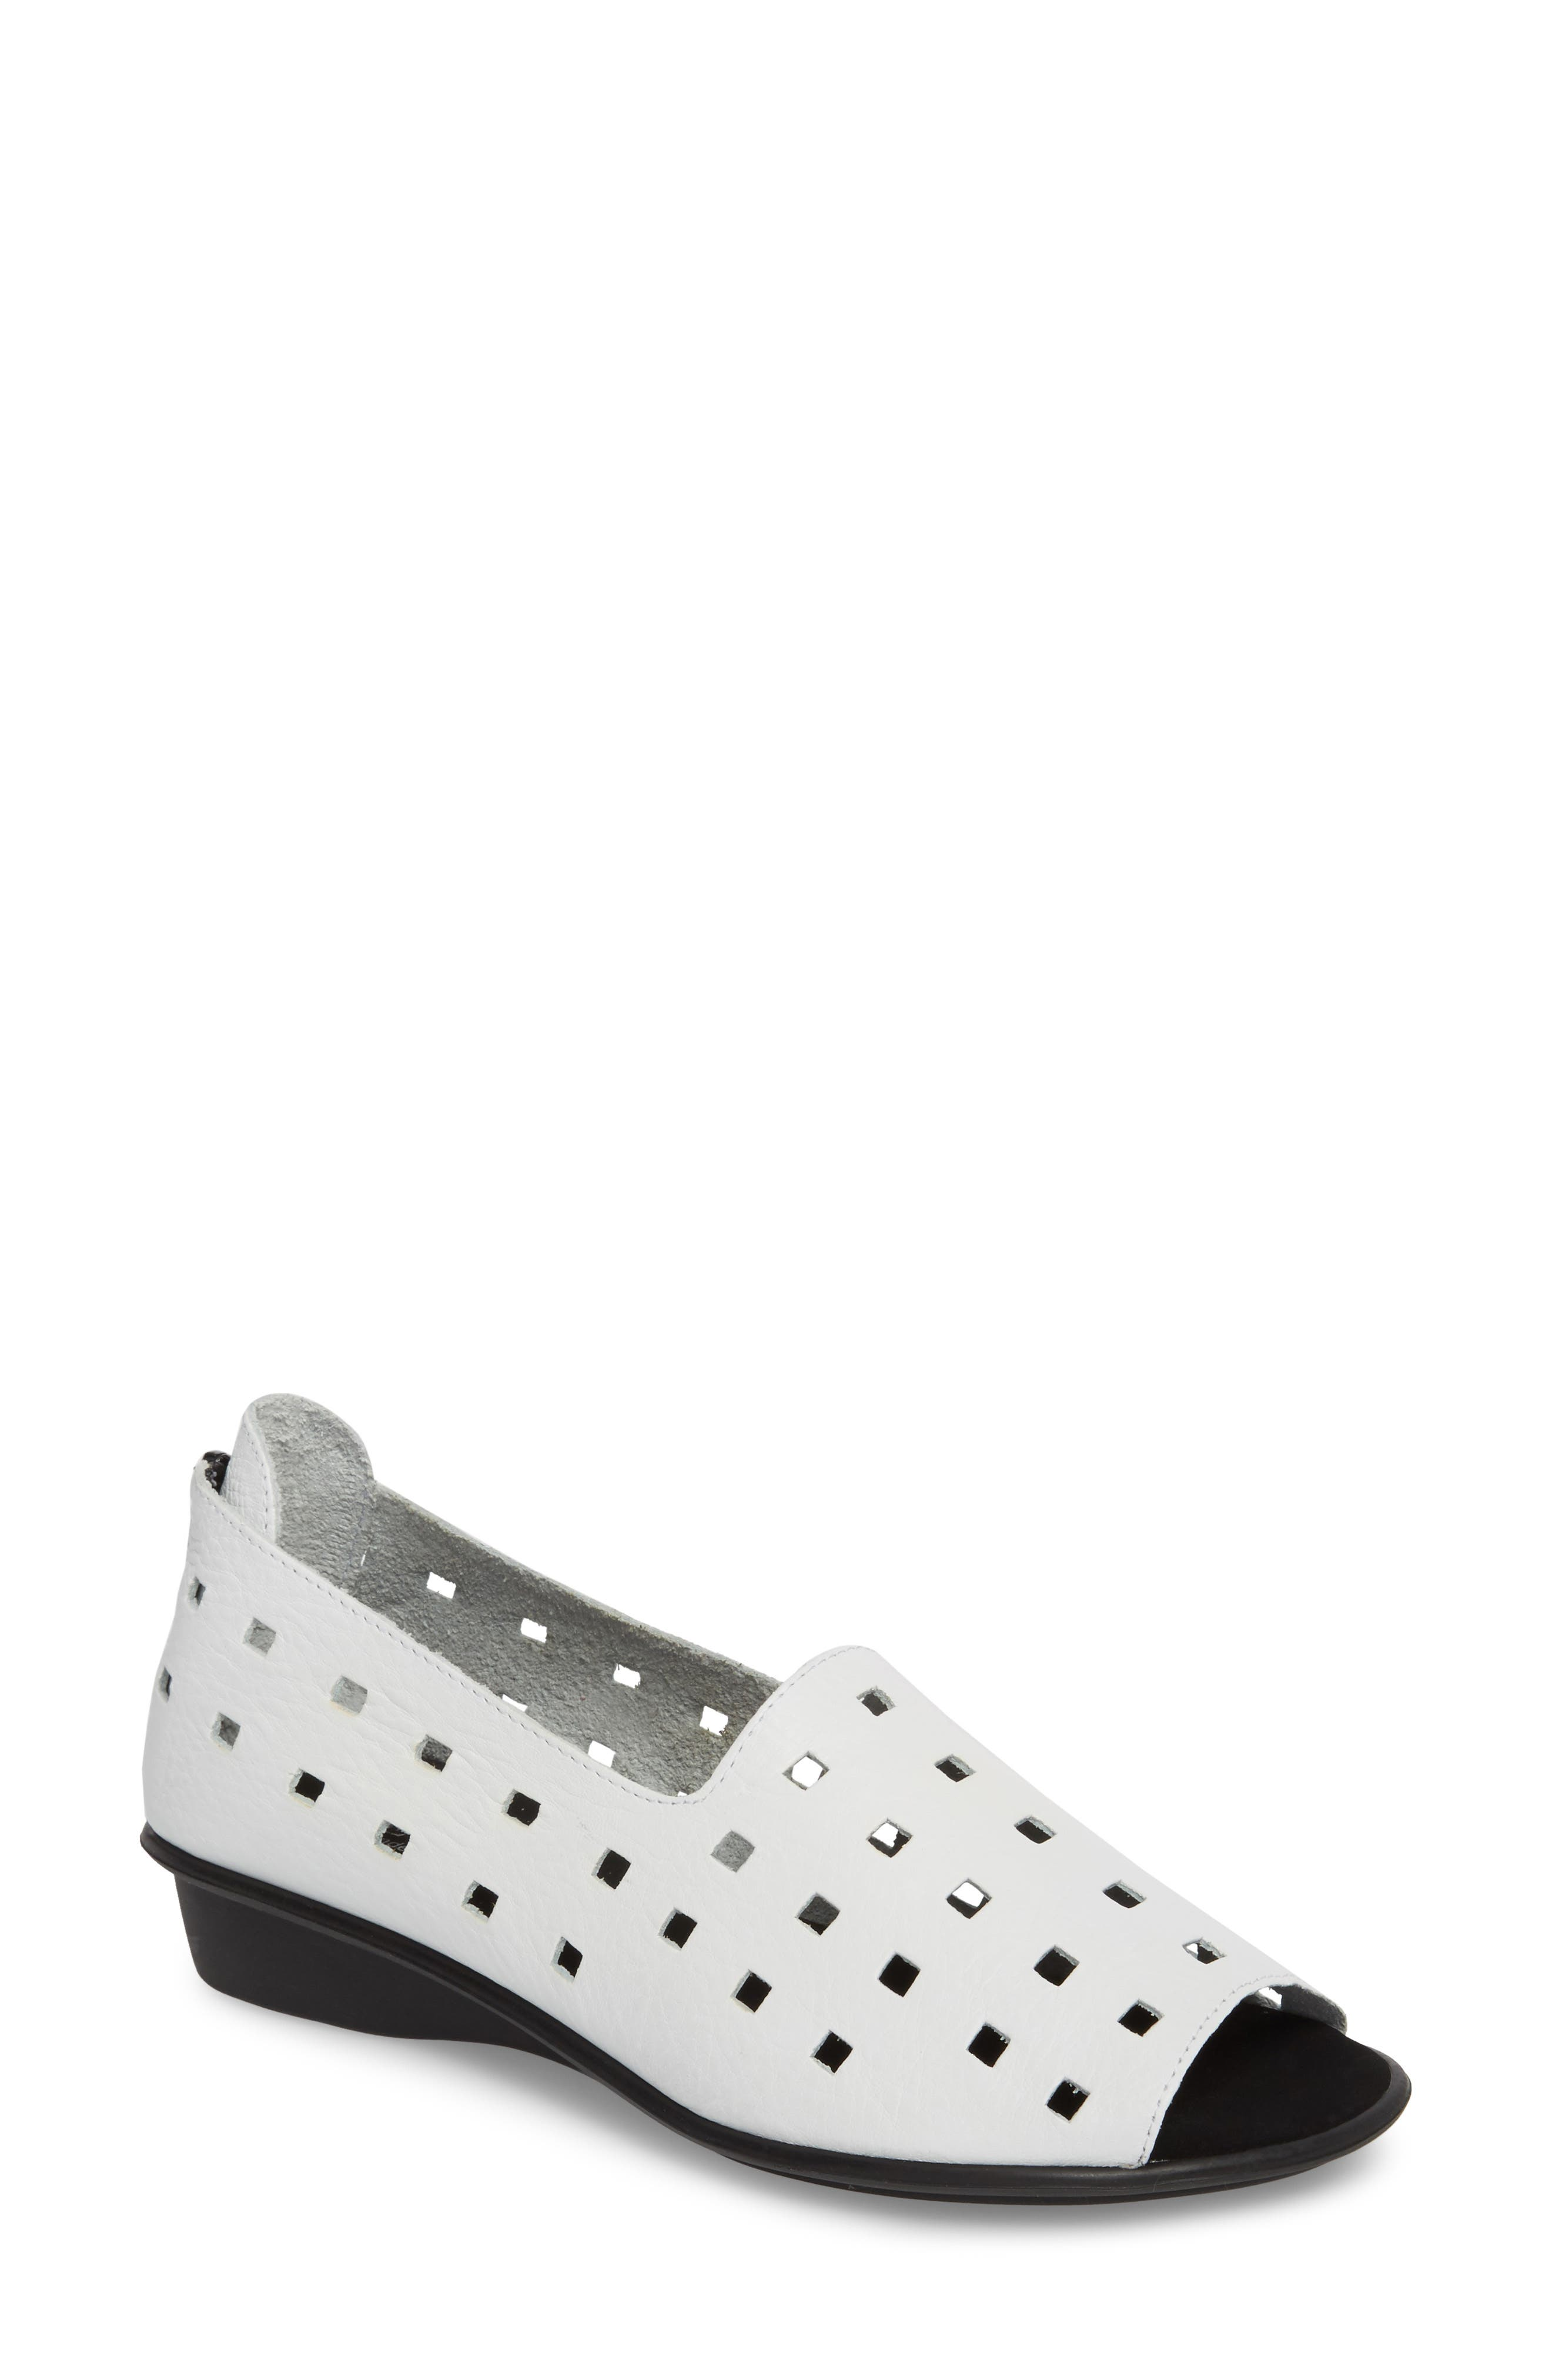 'Evonne' Cutout Open-Toe Flat, Main, color, WHITE LEATHER